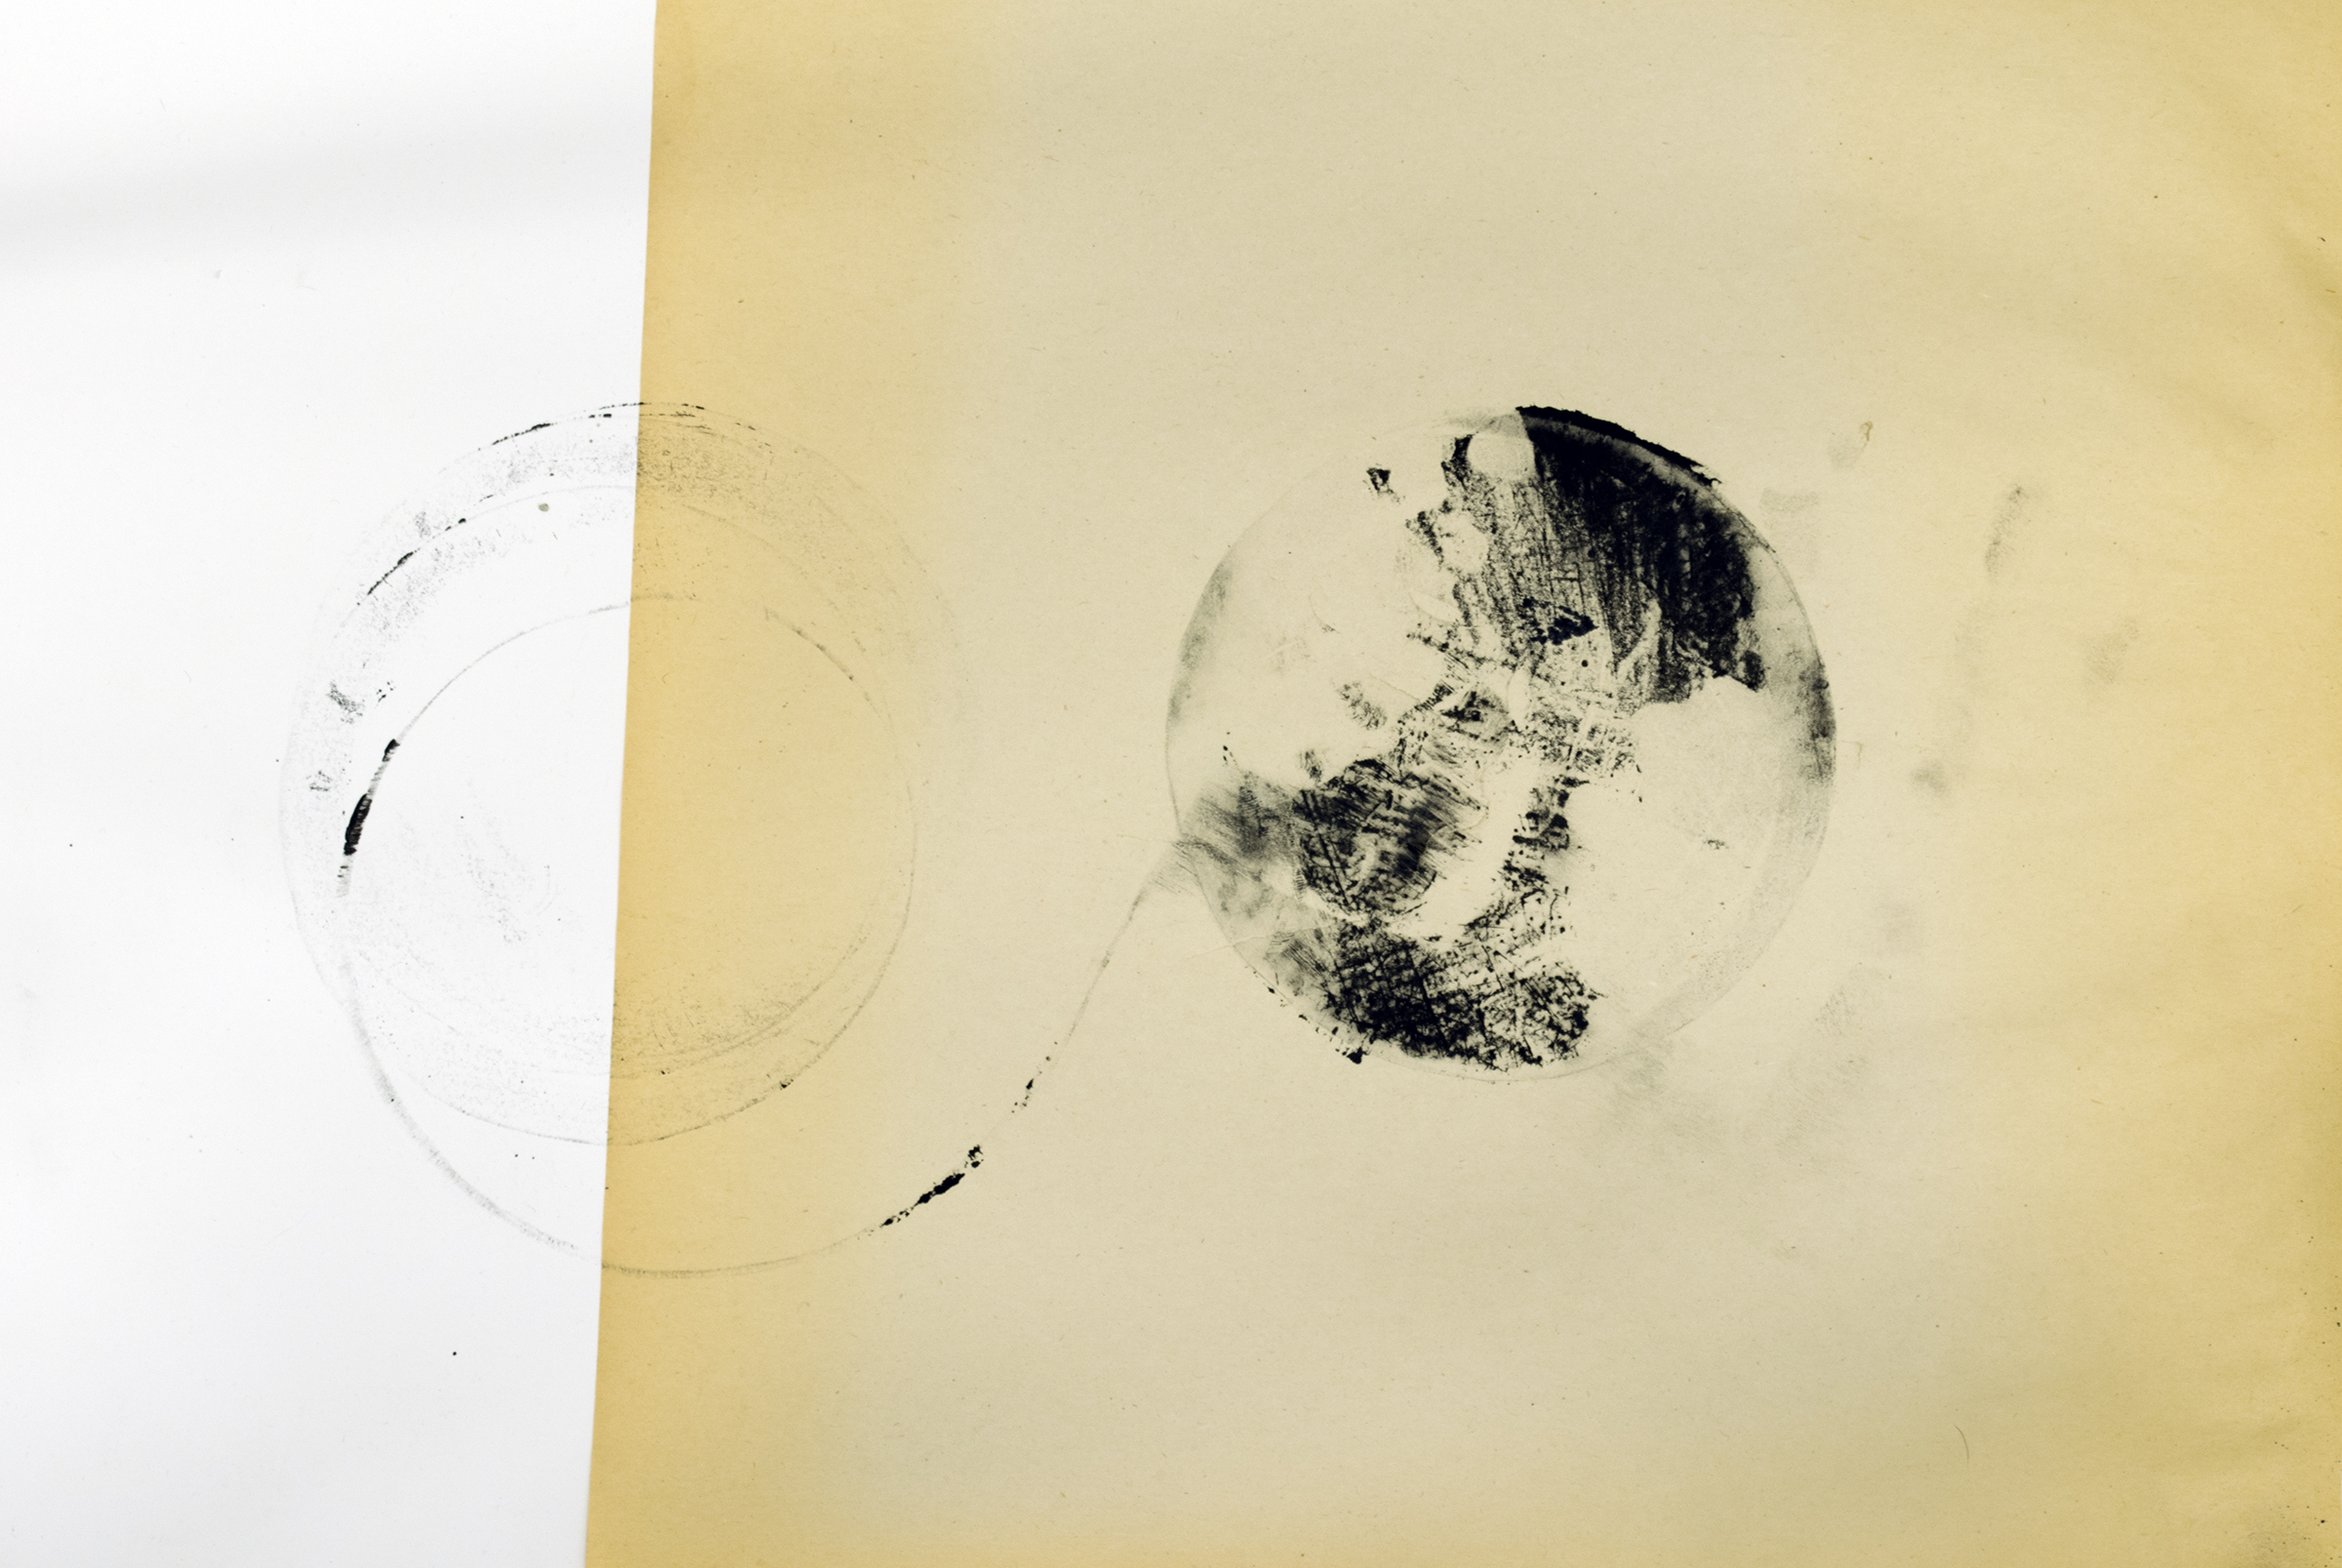 Infinity . Ink on found paper on board. 2015-2016.  One of dozens of action prints that involve the generation of momentum and hurling of weight.